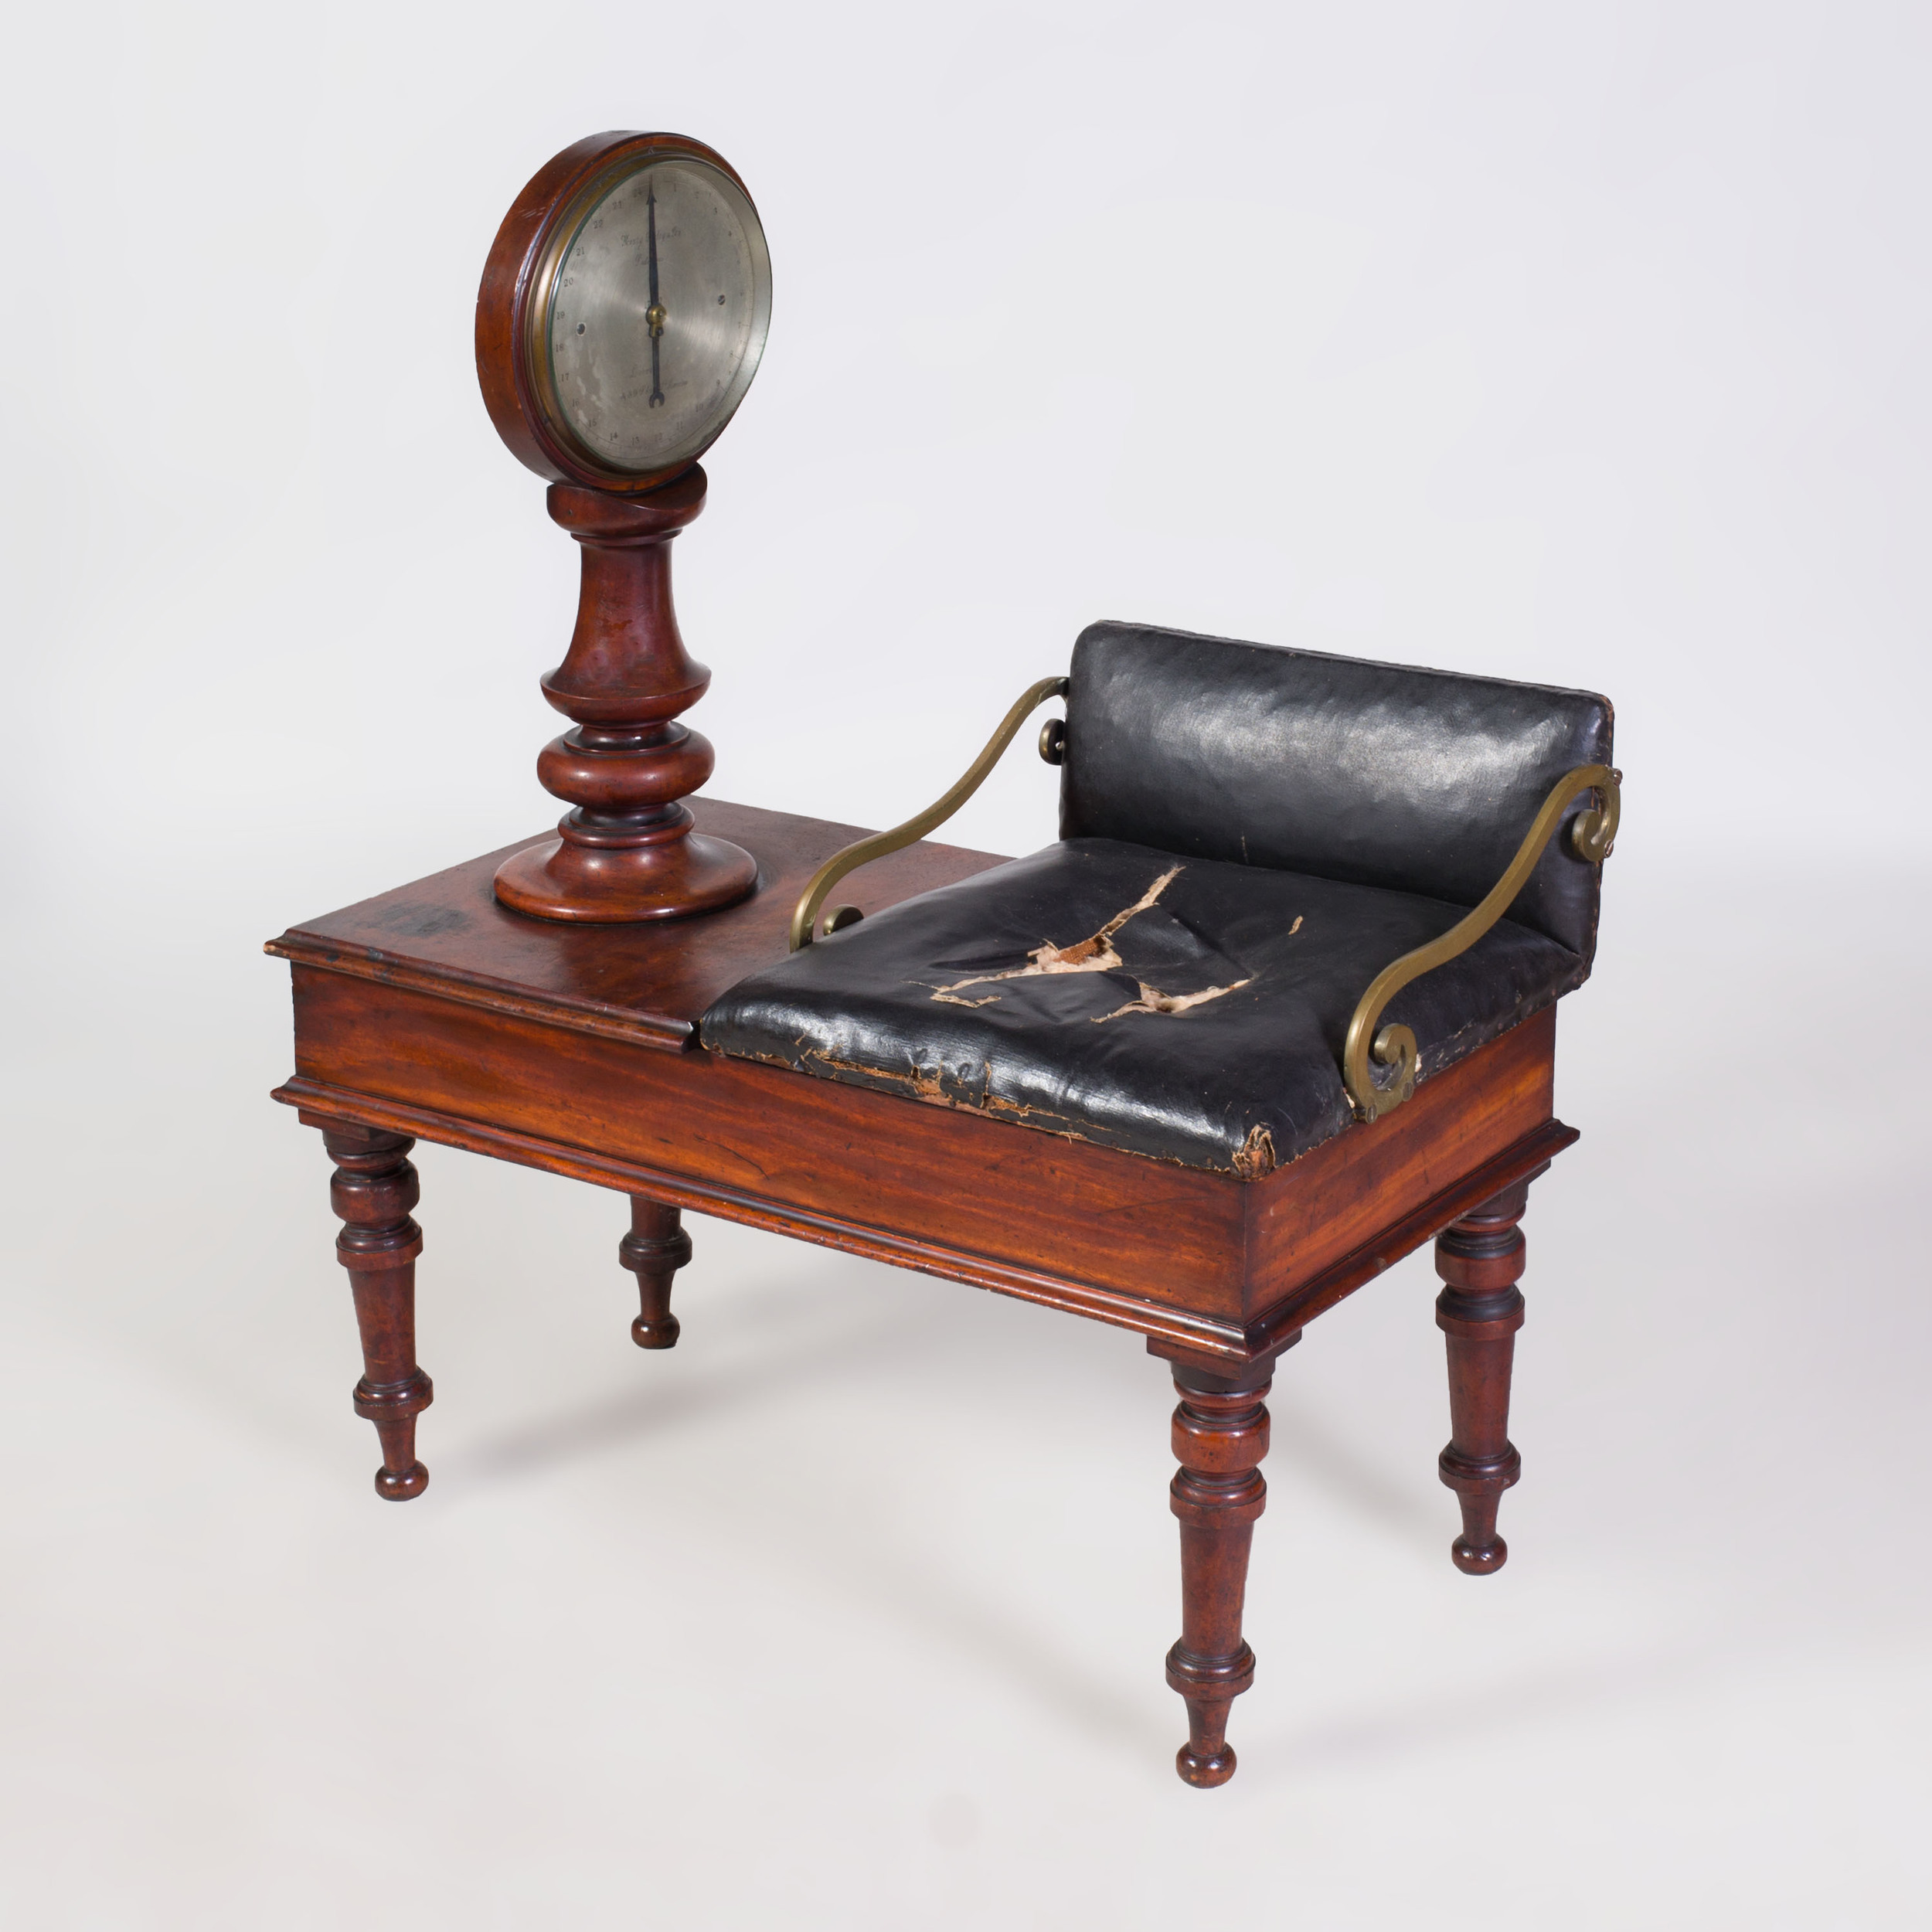 Awe Inspiring Victorian Mahogany Jockeys Weight Bench Auction House Website Unemploymentrelief Wooden Chair Designs For Living Room Unemploymentrelieforg